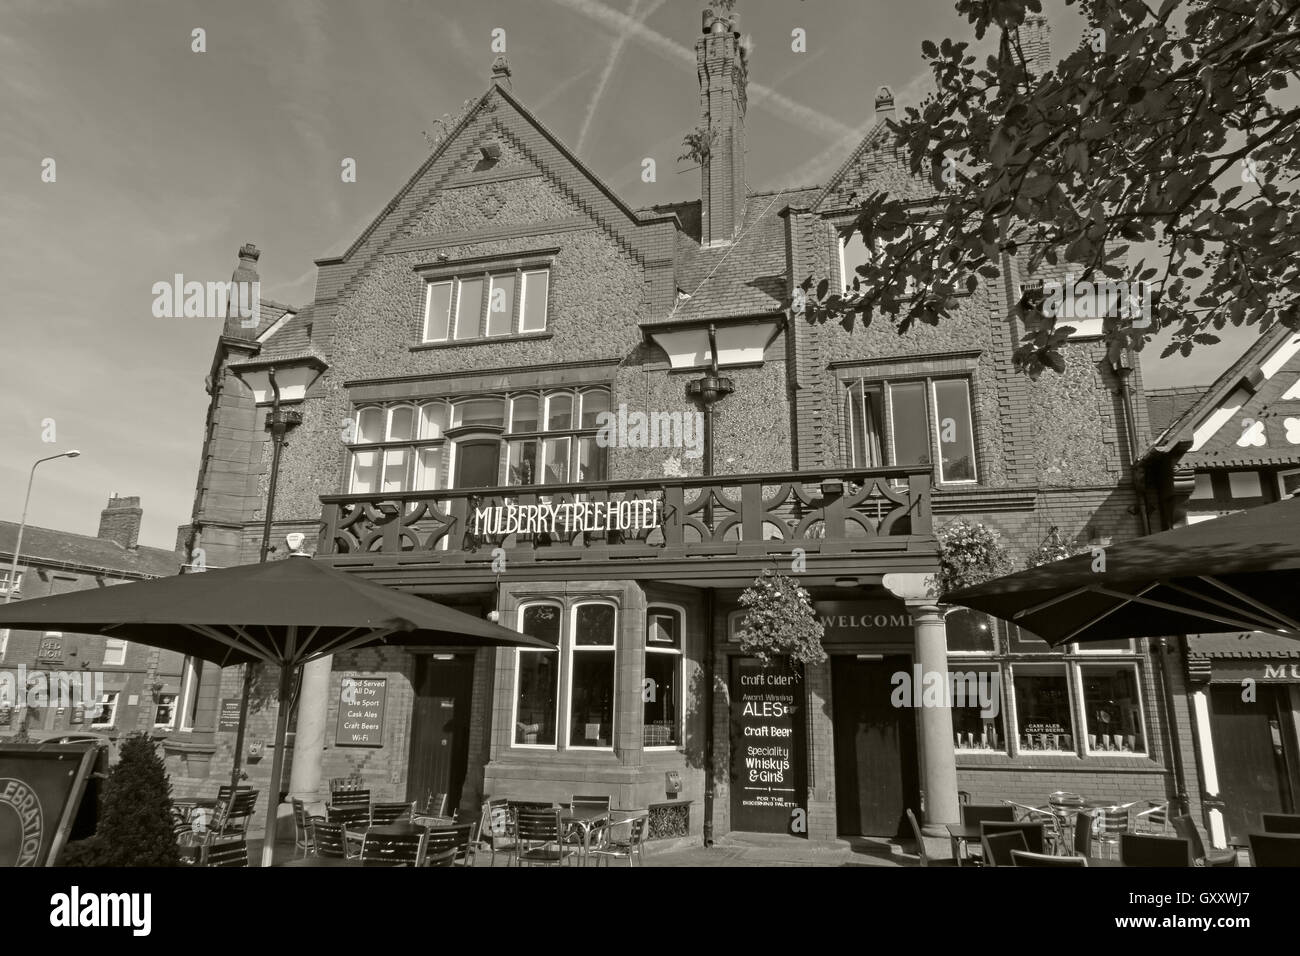 Building,wooden,tudor,architecture,Mulberry,Tap,pubs,bar,bars,south,Warrington,Public,house,Cheshire,England,UK,Victoria,Square,Sq,black,white,mono,monochrome,Mulberry Tap,Mulberry Tree,Stockton Heath,South Warrington,Victoria Square,Victoria Sq,GoTonySmith,@HotpixUK,Tony,Smith,UK,GB,Great,Britain,United,Kingdom,English,British,England,Buy Pictures of,Buy Images Of,Images of,Stock Images,Tony Smith,United Kingdom,Great Britain,British Isles